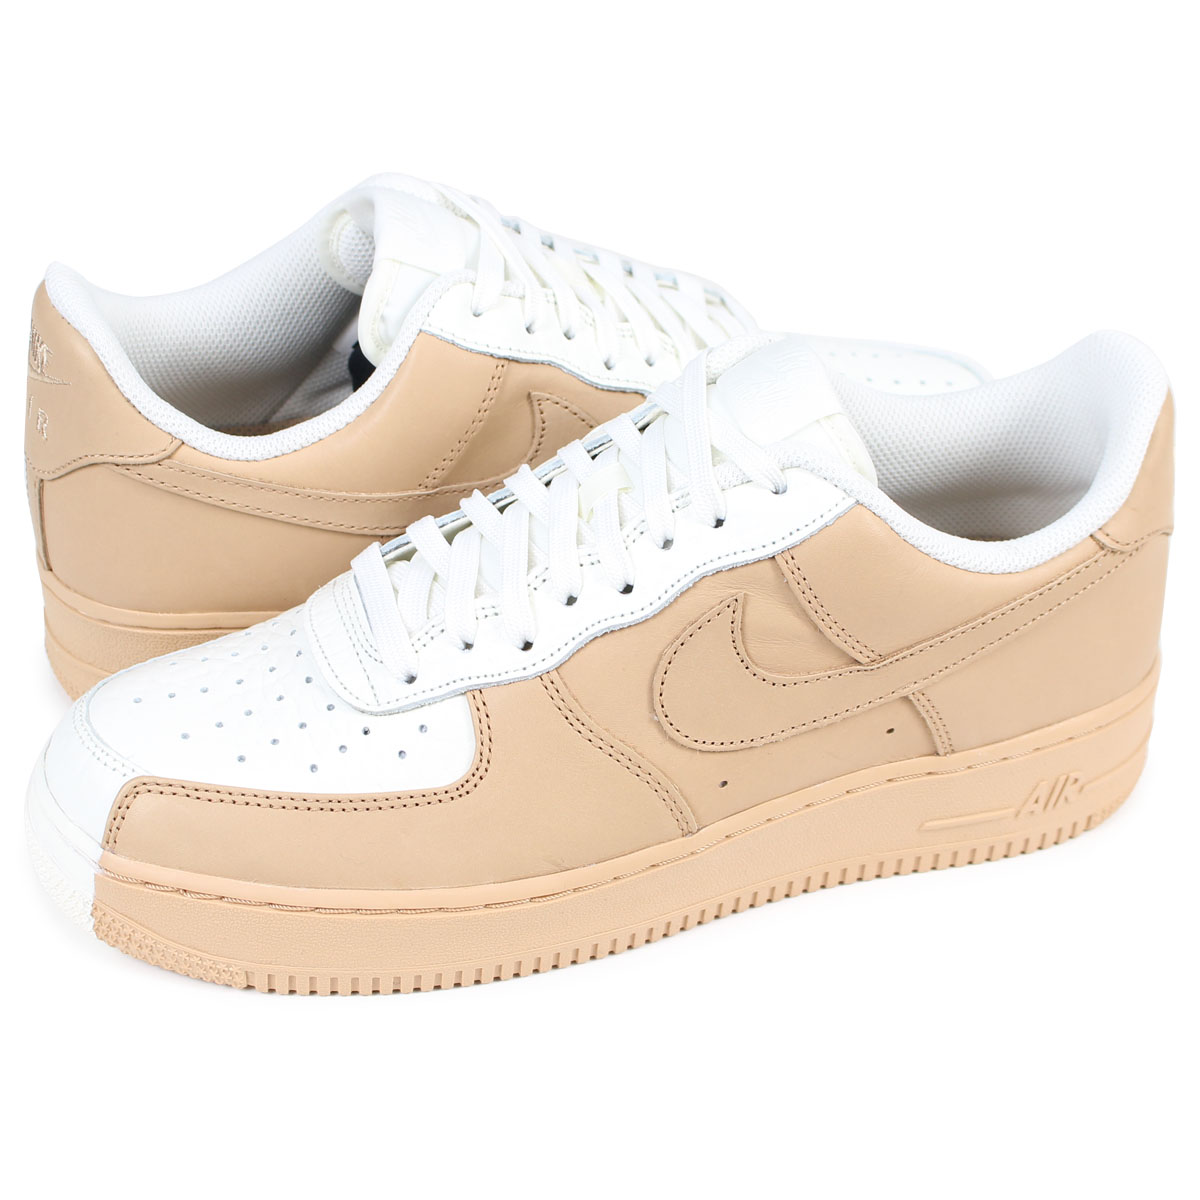 100% authentic 6059d 73078 NIKE AIR FORCE 1 PREMIUM Nike air force 1 07 sneakers 905,345-105 men s  white  load planned Shinnyu load in reservation product 1 23 containing